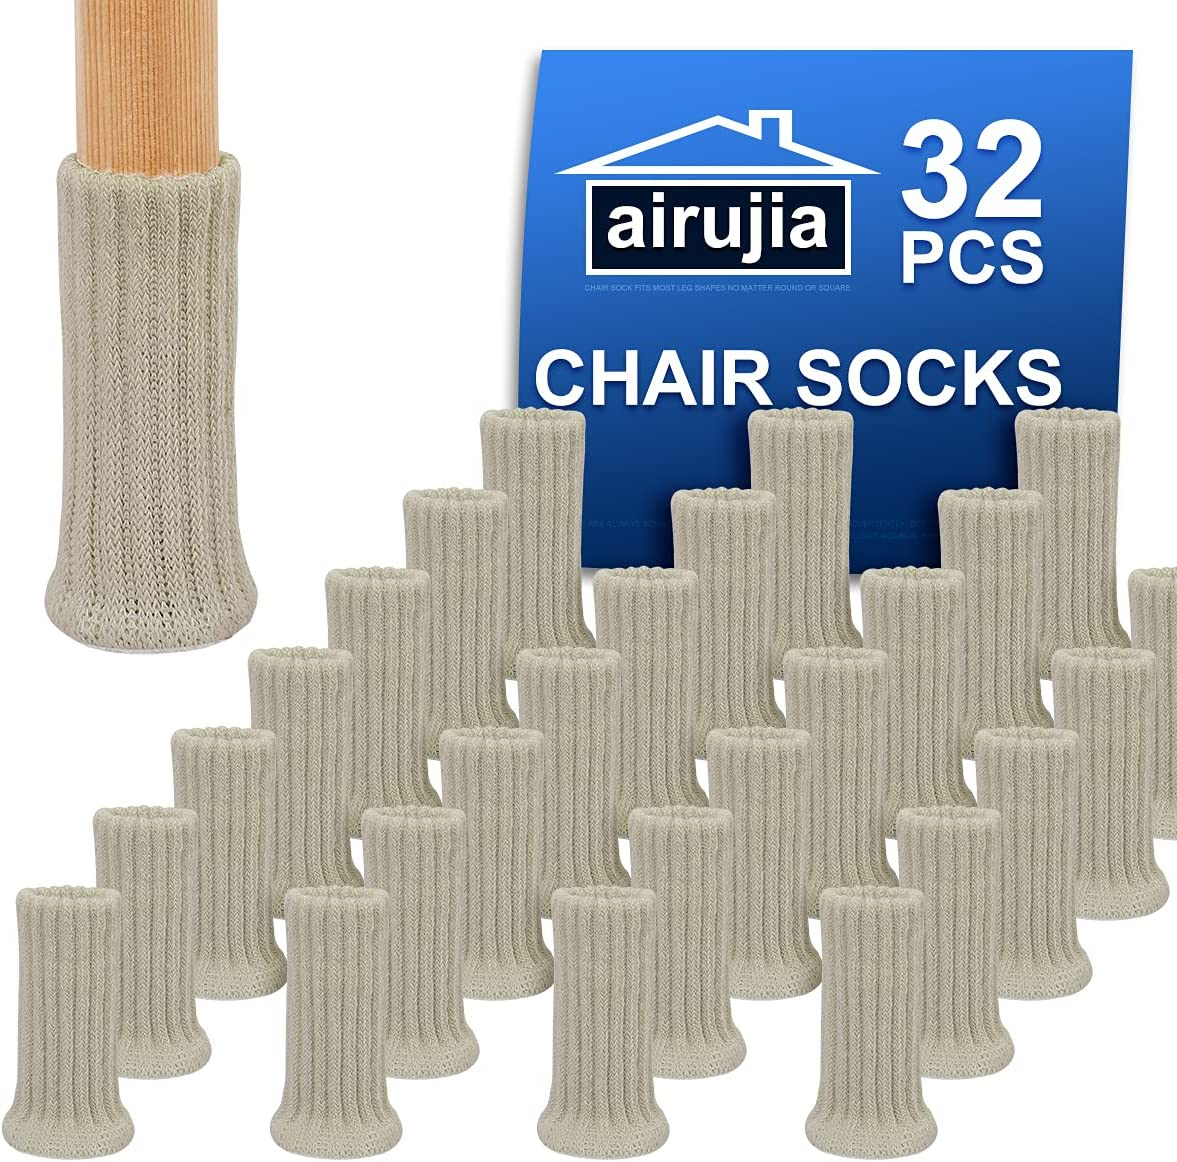 AIRUJIA Chair Leg Socks, 32PCS Knitted Elastic Furniture Socks Chair Leg Floor Protectors, Double Thickness, Fit Square Round Chair Feet with Diameter from 3/4 inch to 1-1/2 inch, Beige